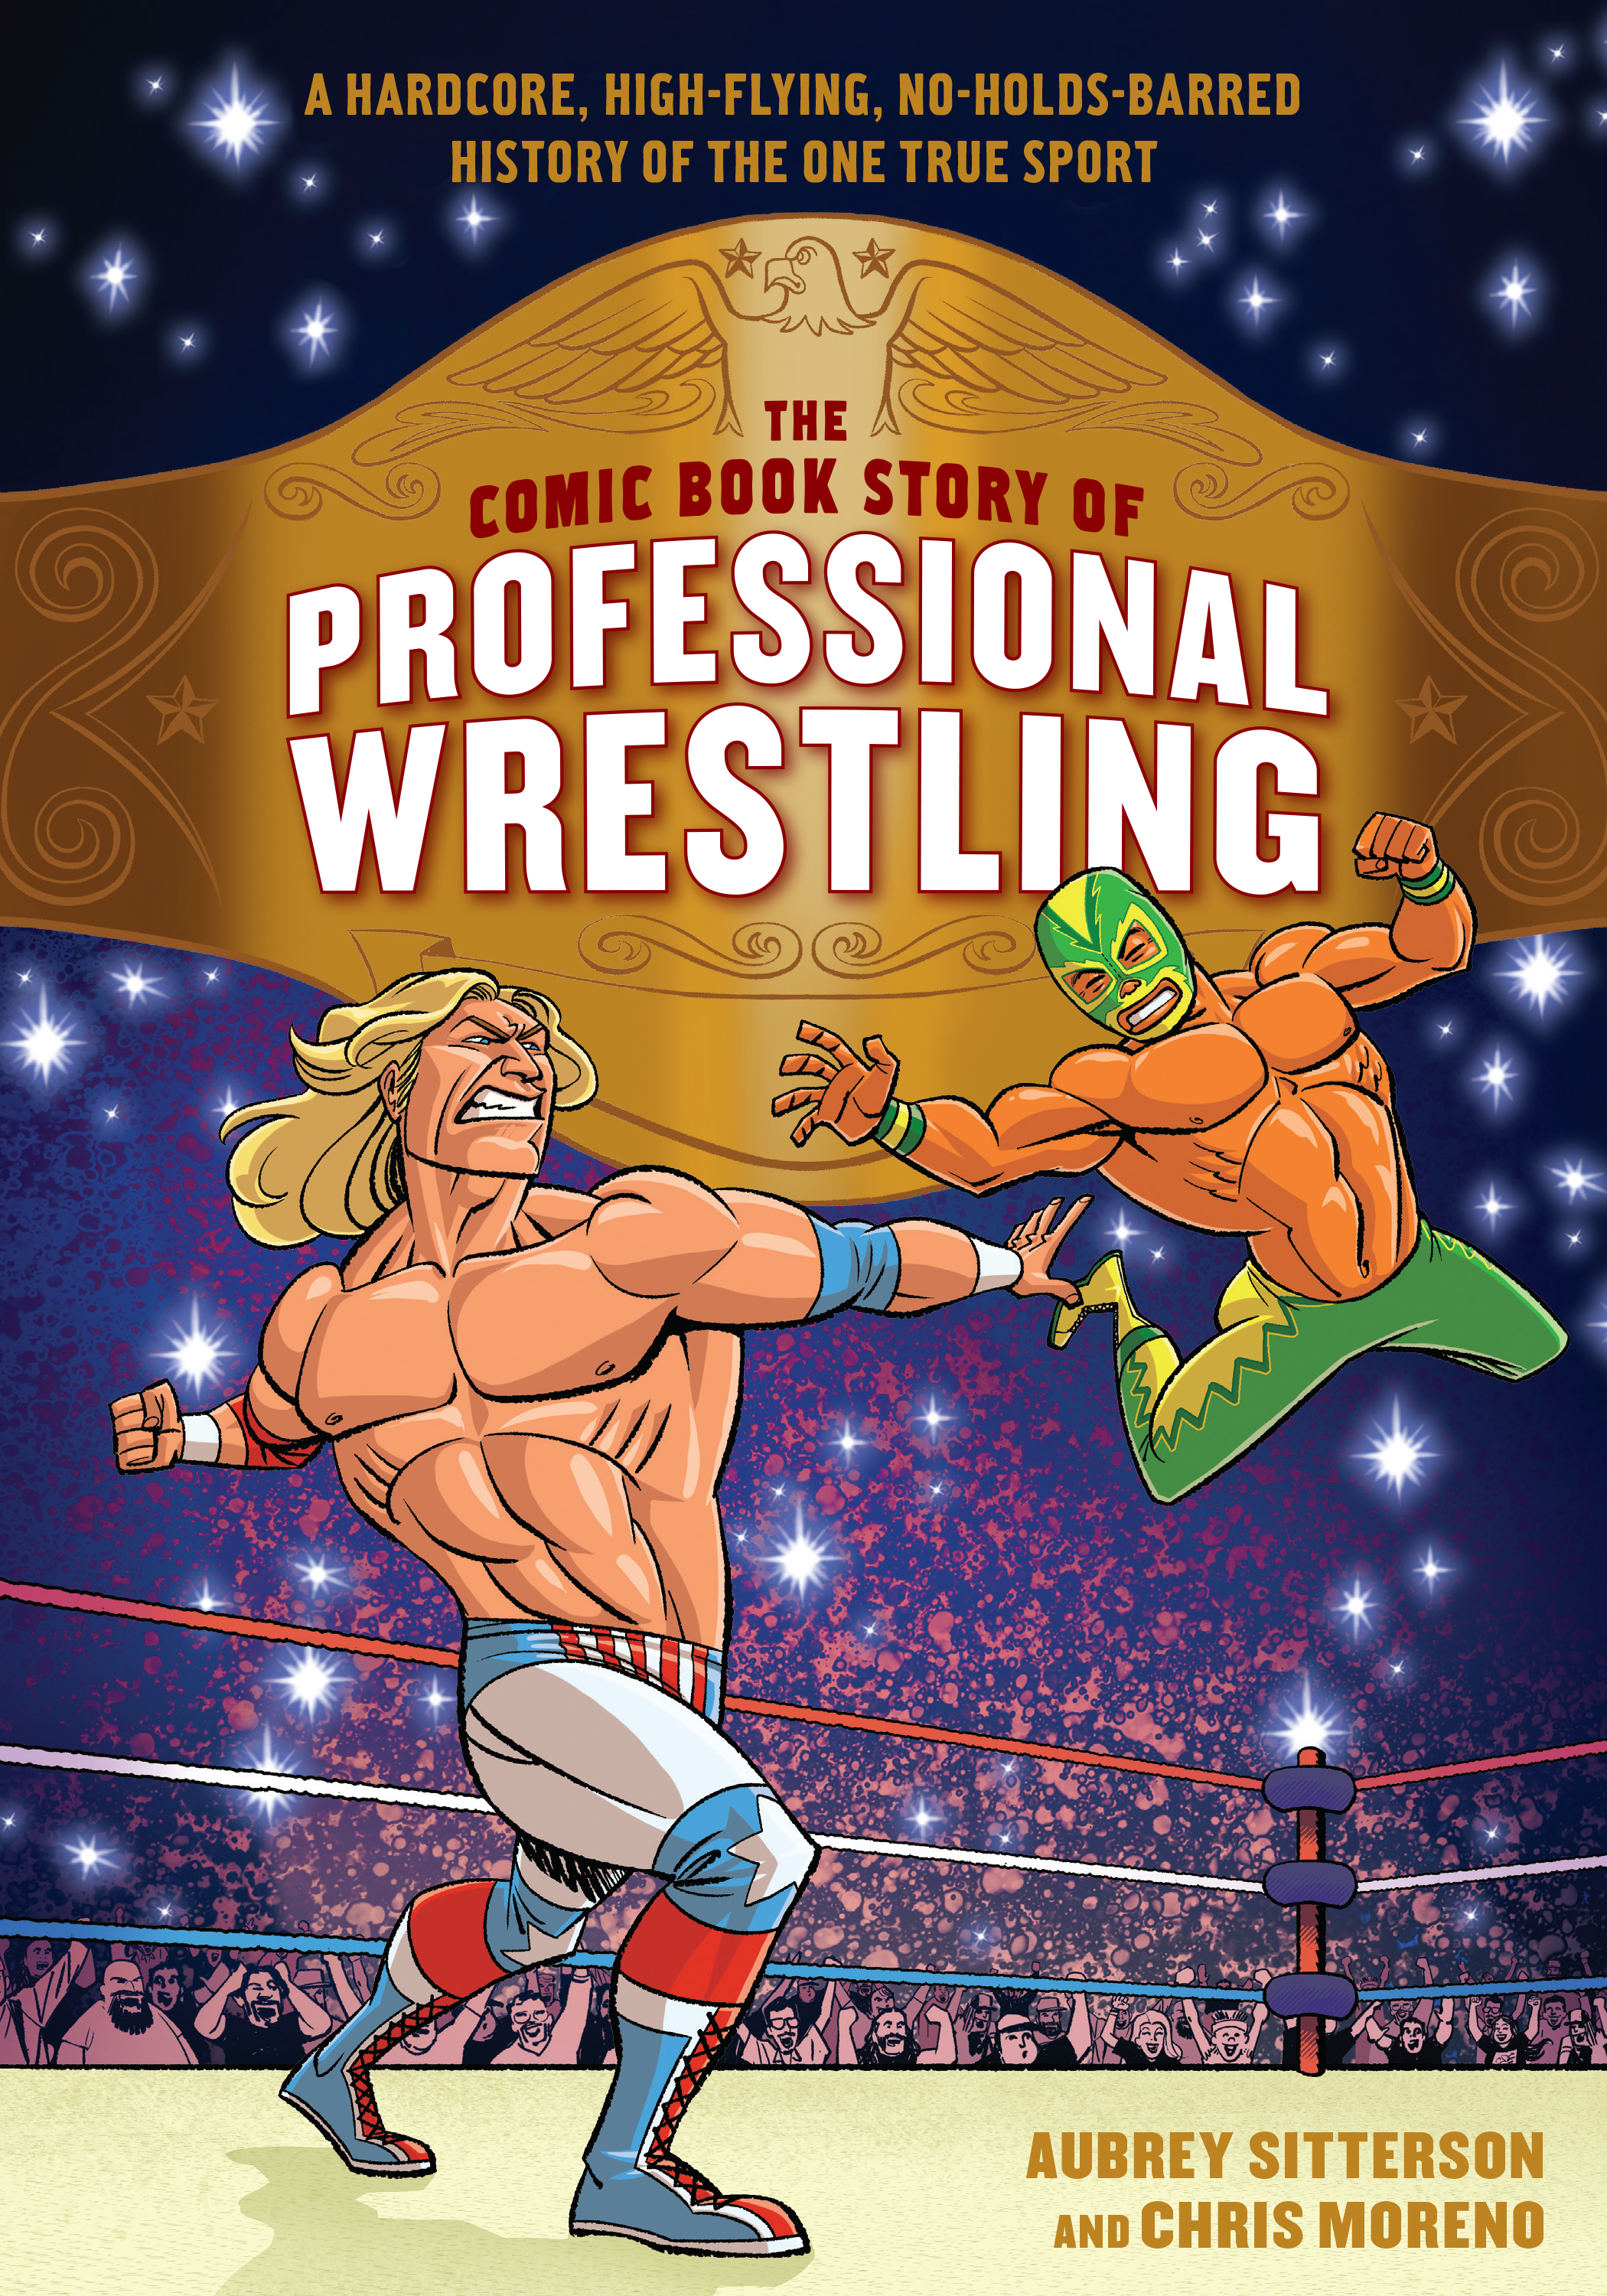 http://www.pastemagazine.com/articles/Comic%20Book%20Story%20of%20Professional%20Wrestling.jpg